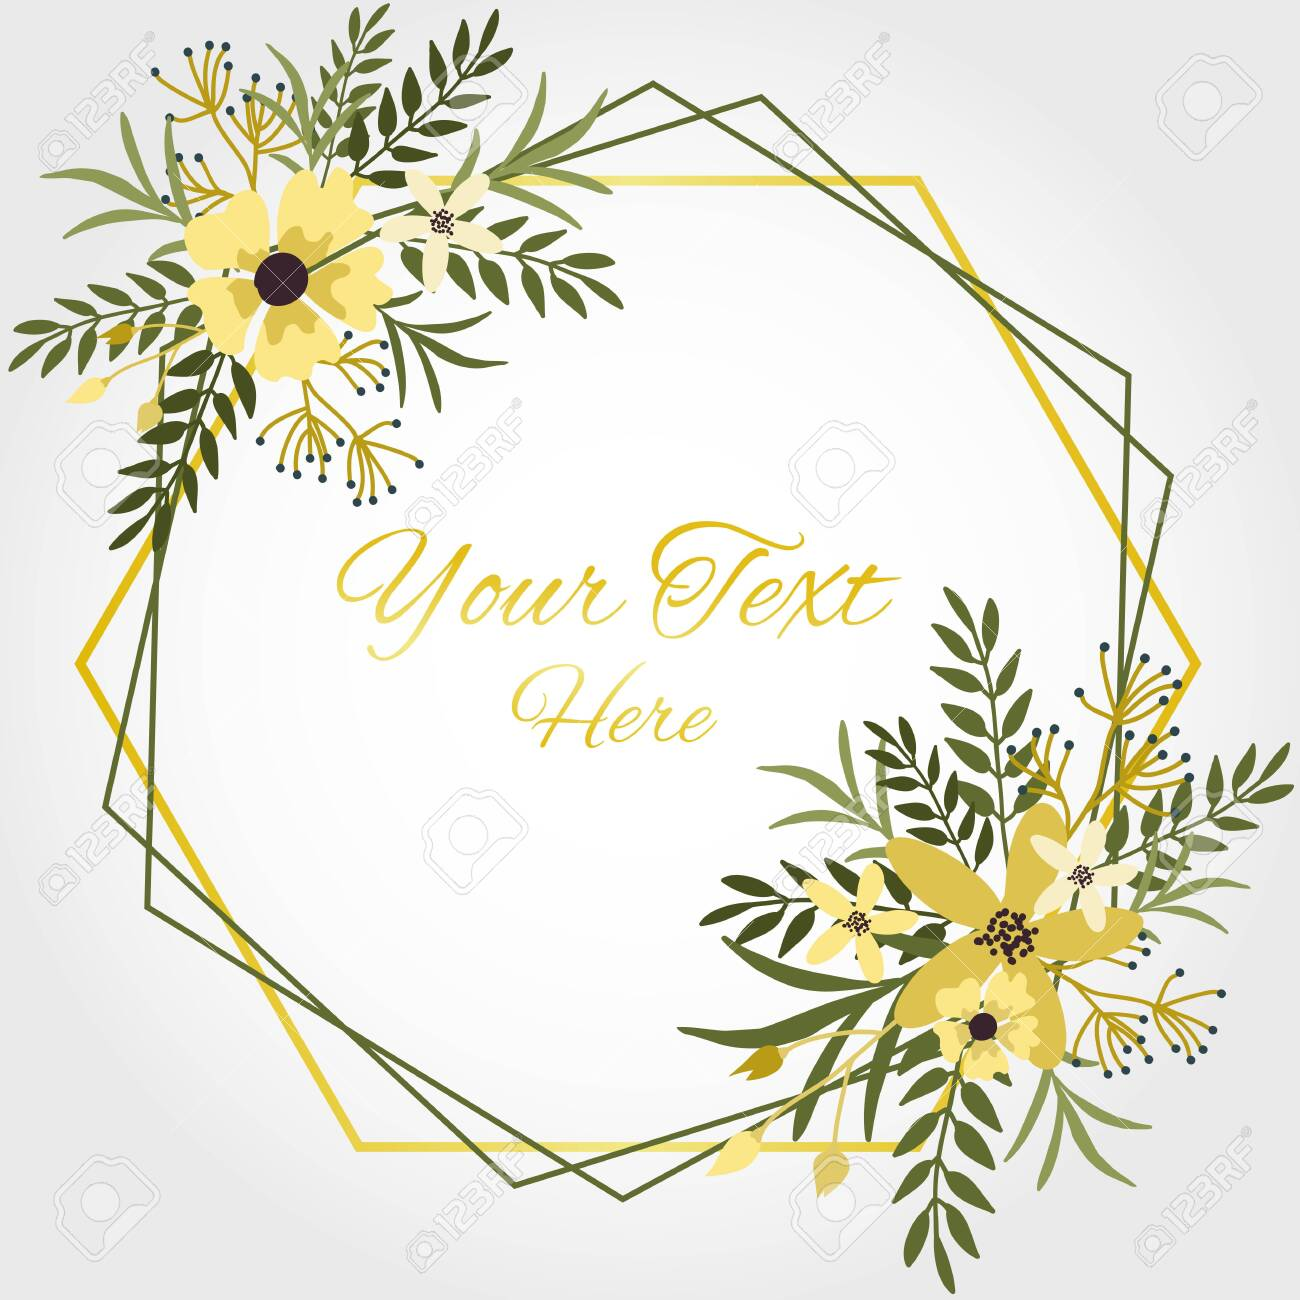 Floral Frame With Yellow Flowers Leaves And Branches In White